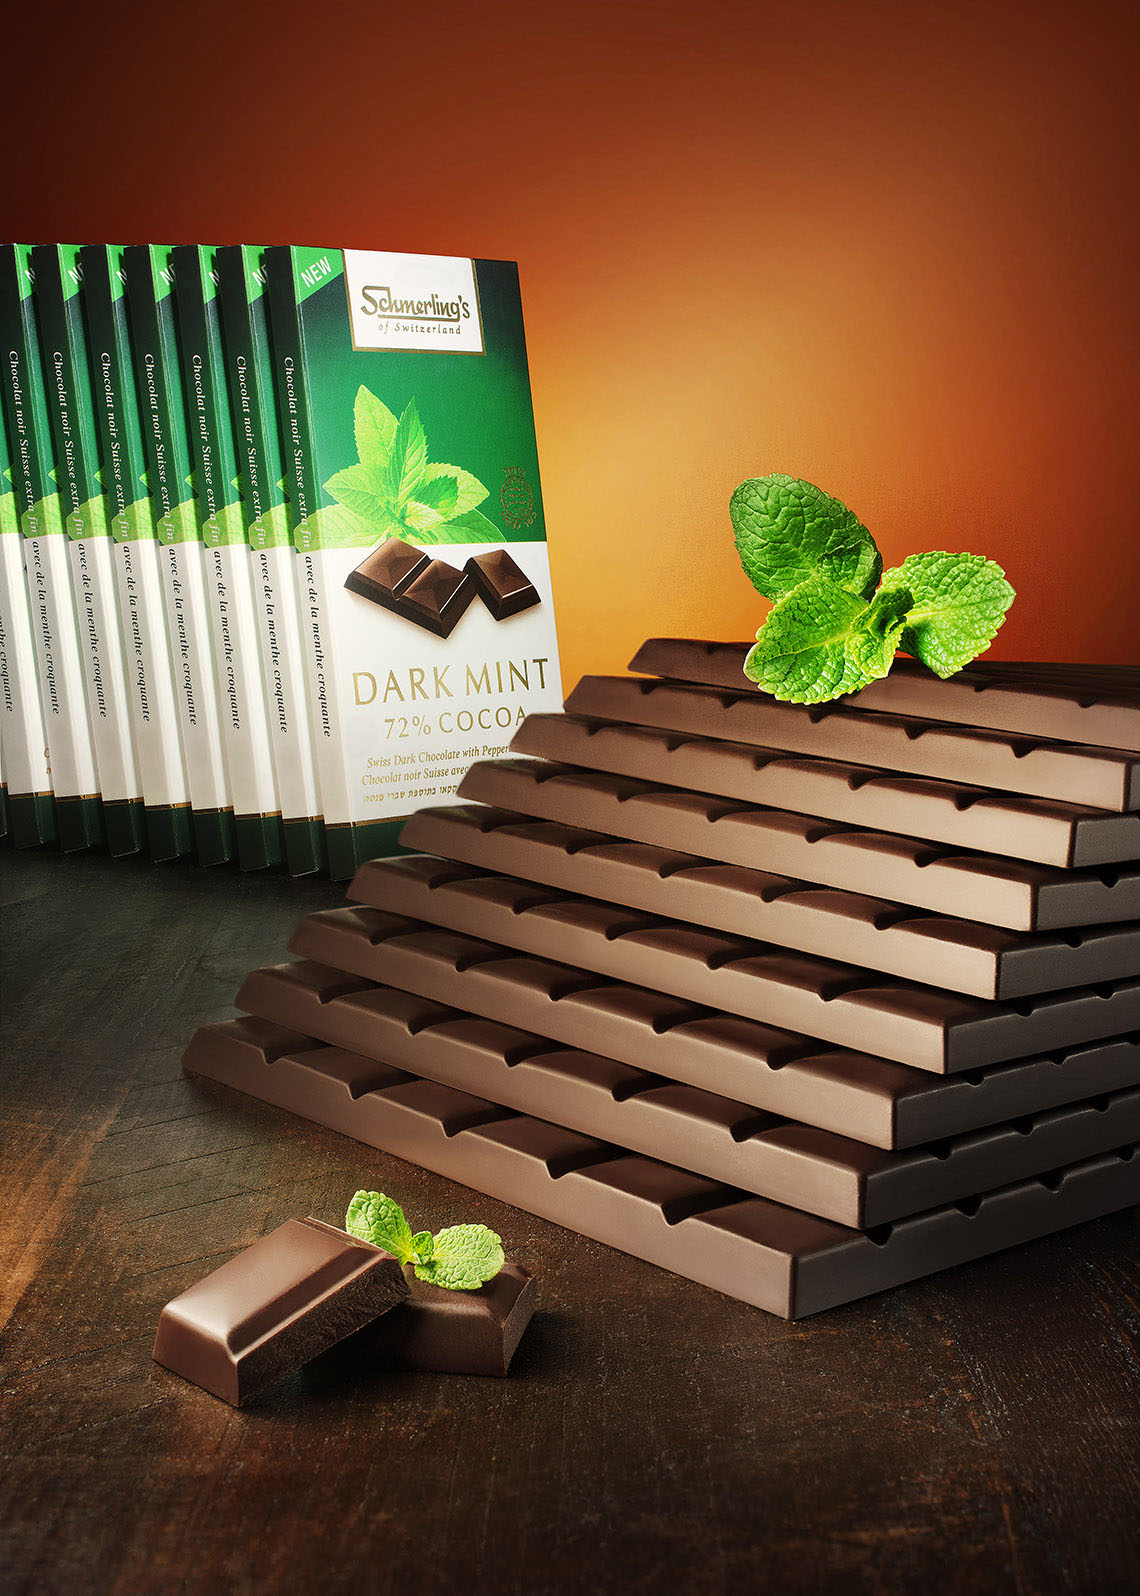 New-york-food-photographer-Schmerling-Chocolate-Mint